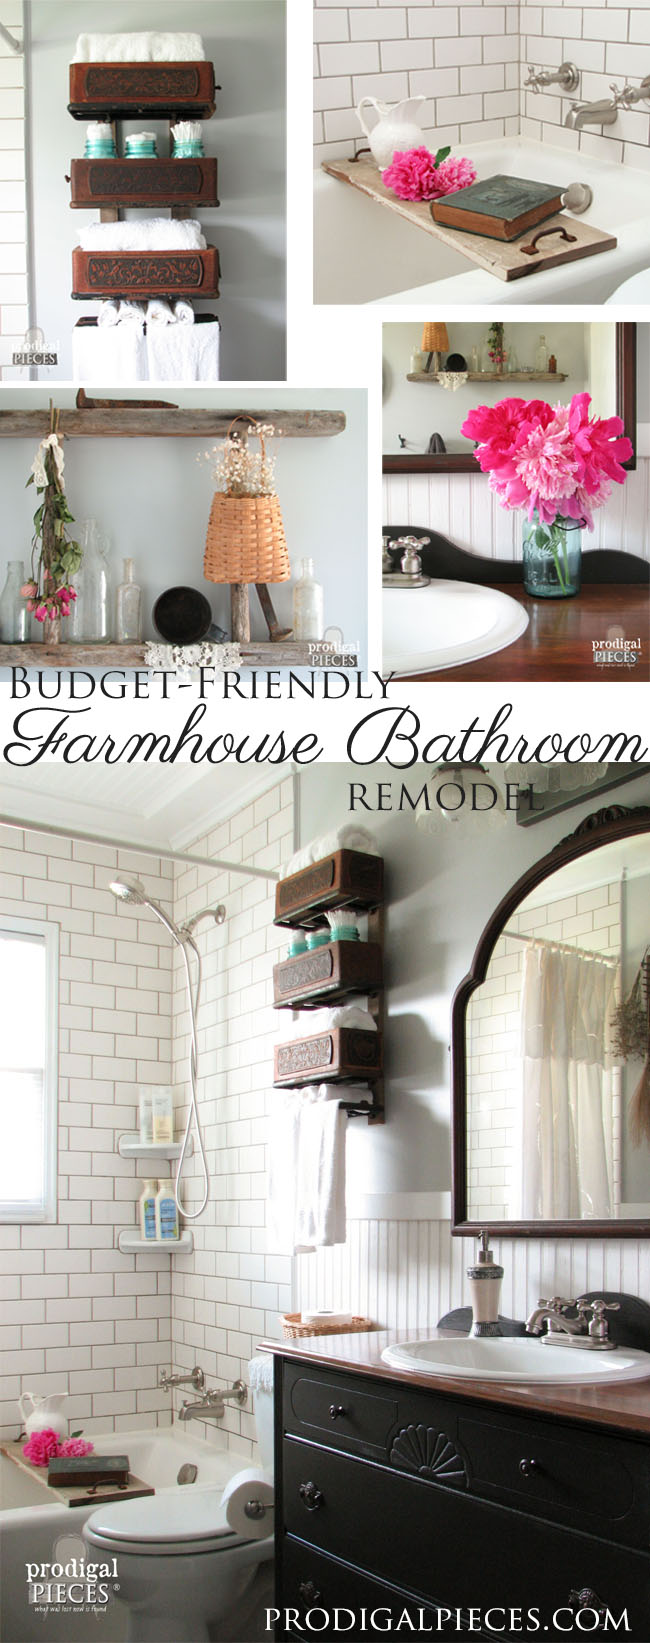 Budget-Friendly DIY Farmhouse Style Bathroom Makeover by Prodigal Pieces | prodigalpieces.com